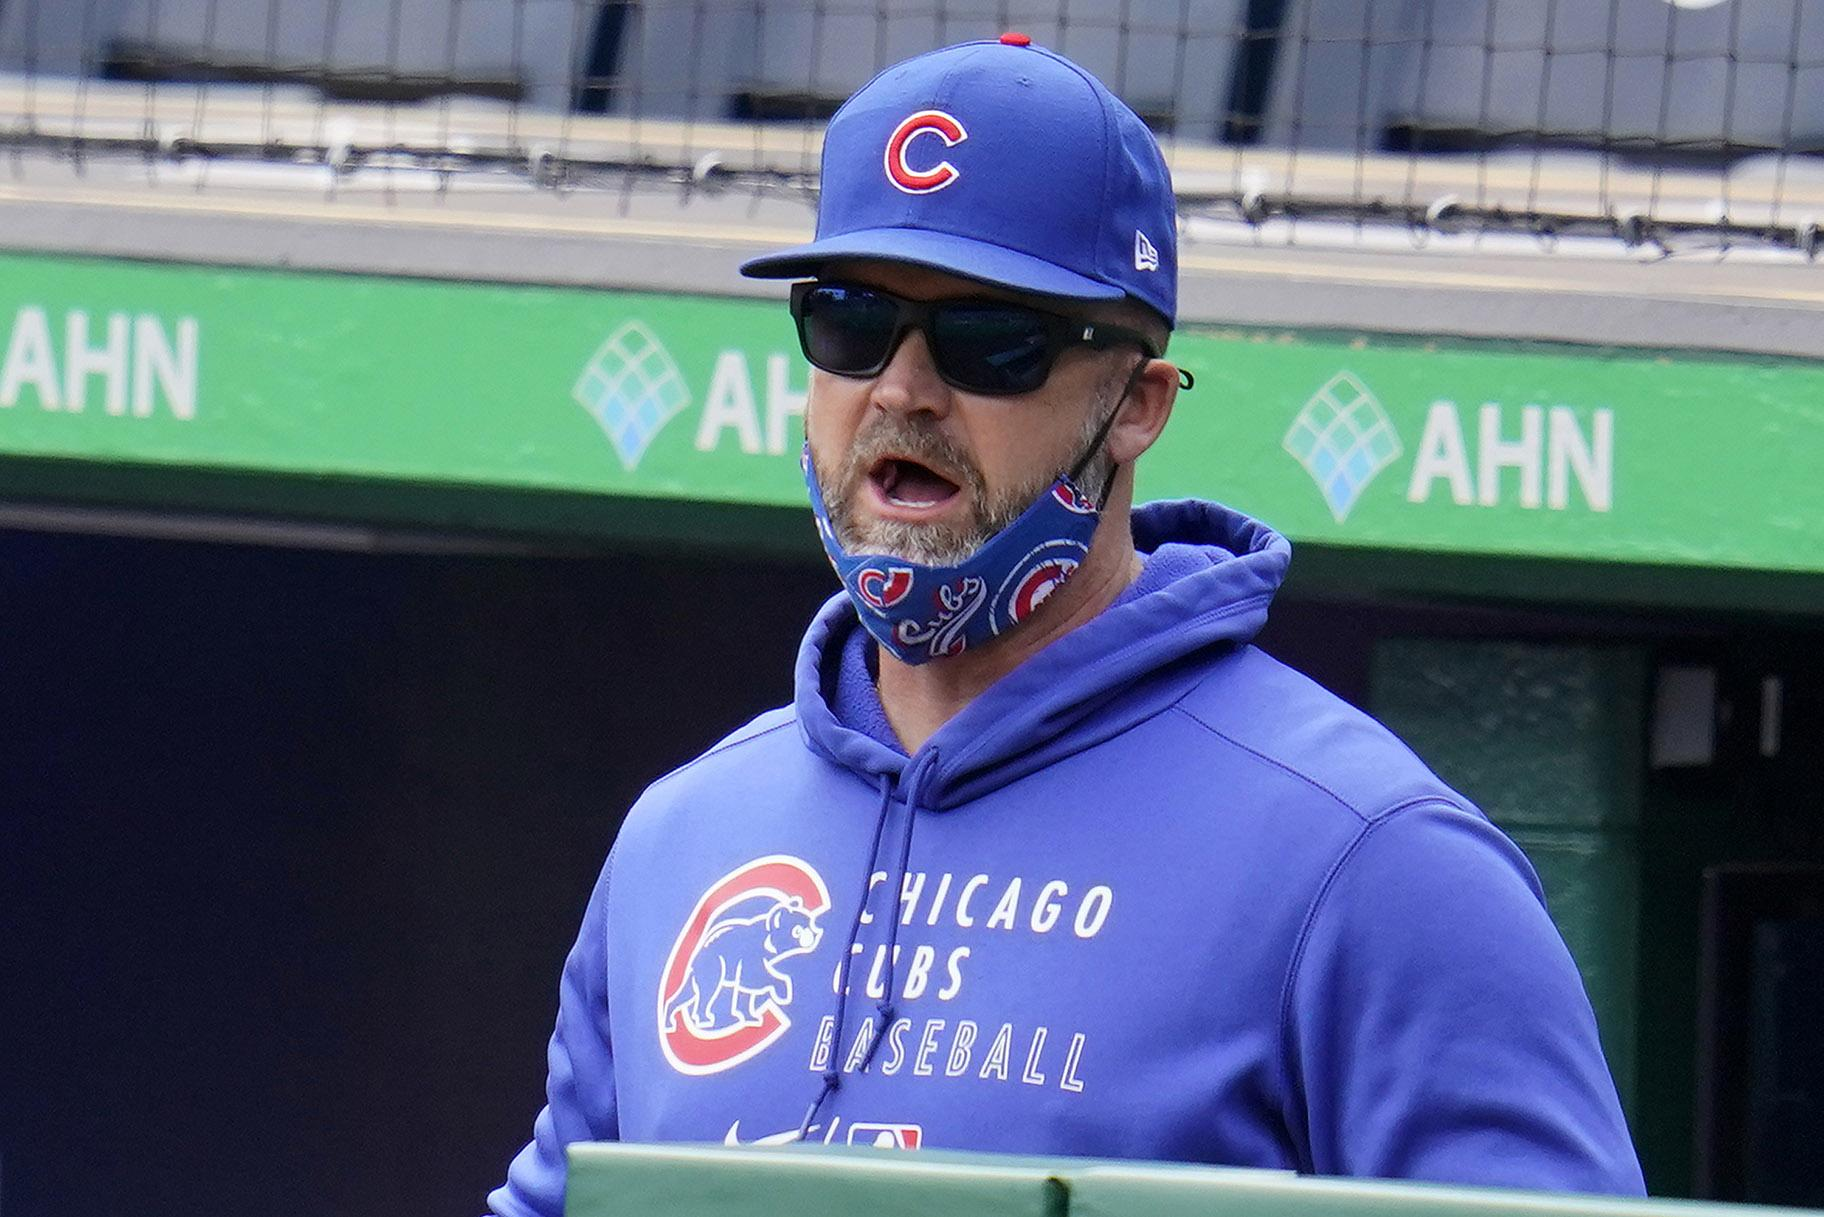 Chicago Cubs manager David Ross stands in the dugout during a baseball game against the Pittsburgh Pirates in Pittsburgh, Sunday, April 11, 2021. (AP Photo / Gene J. Puskar)